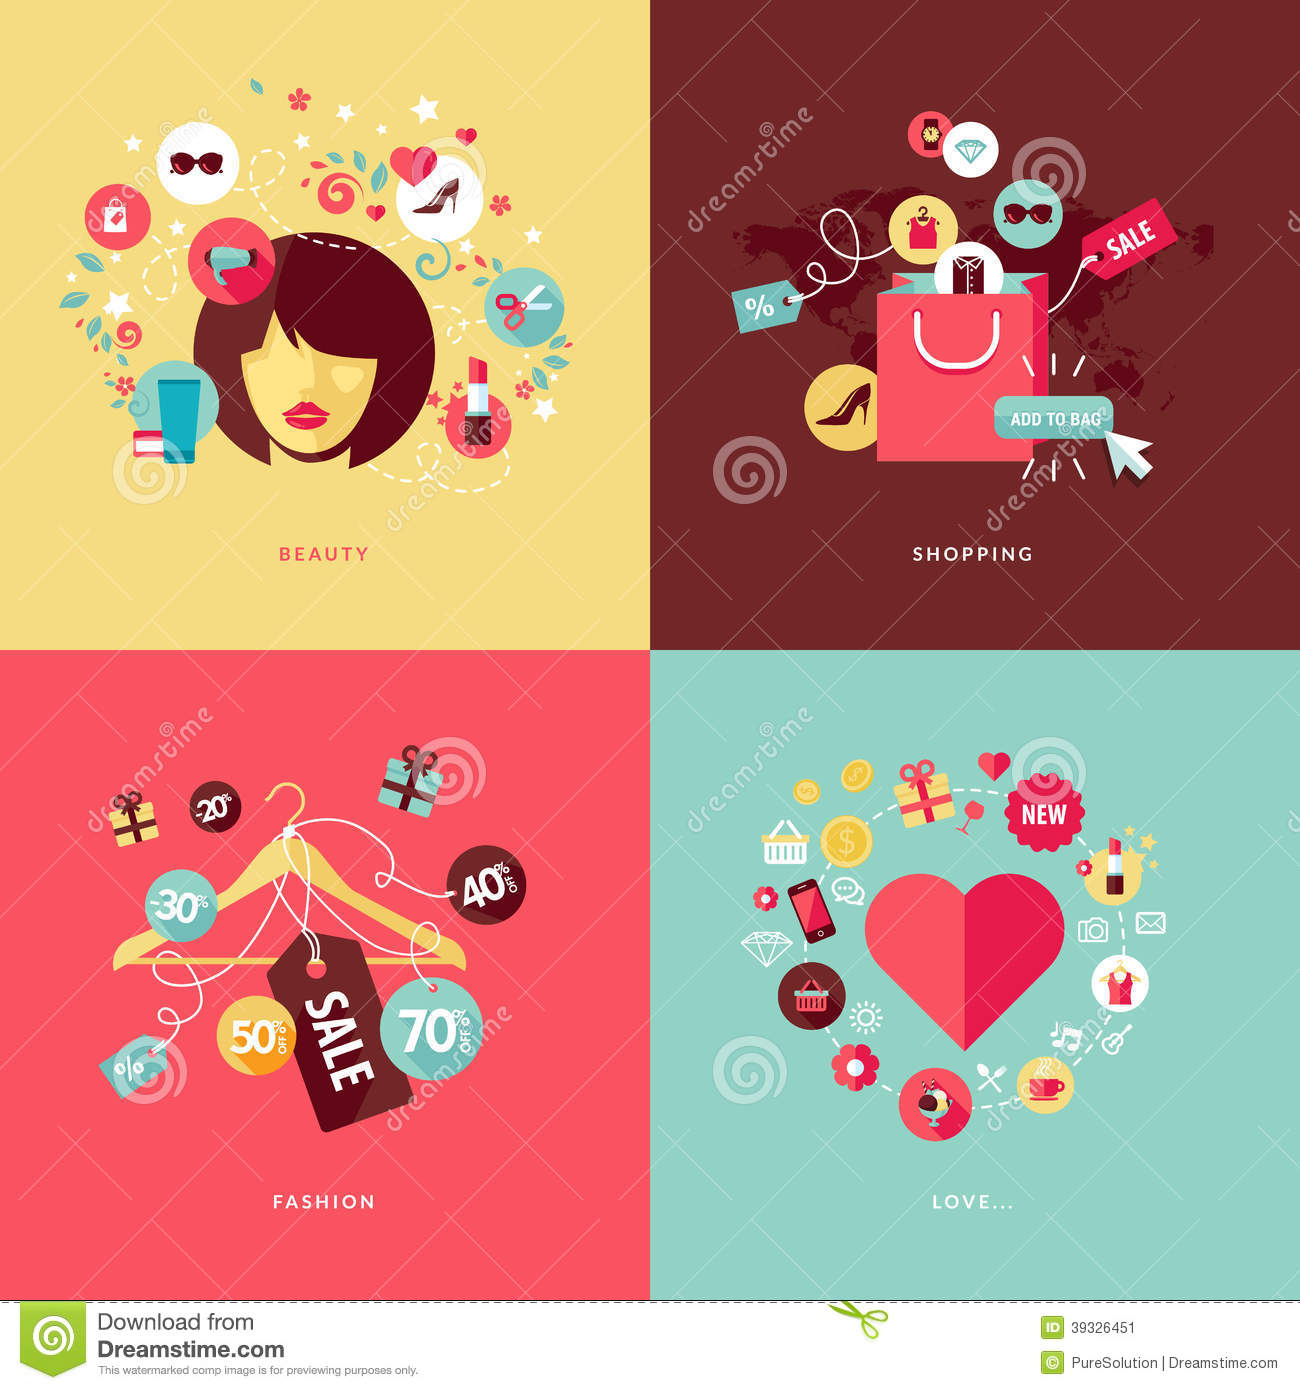 Download Flat Design Concept Icons For Beauty And Shopping Stock Vector - Illustration of heart, icon: 39326451